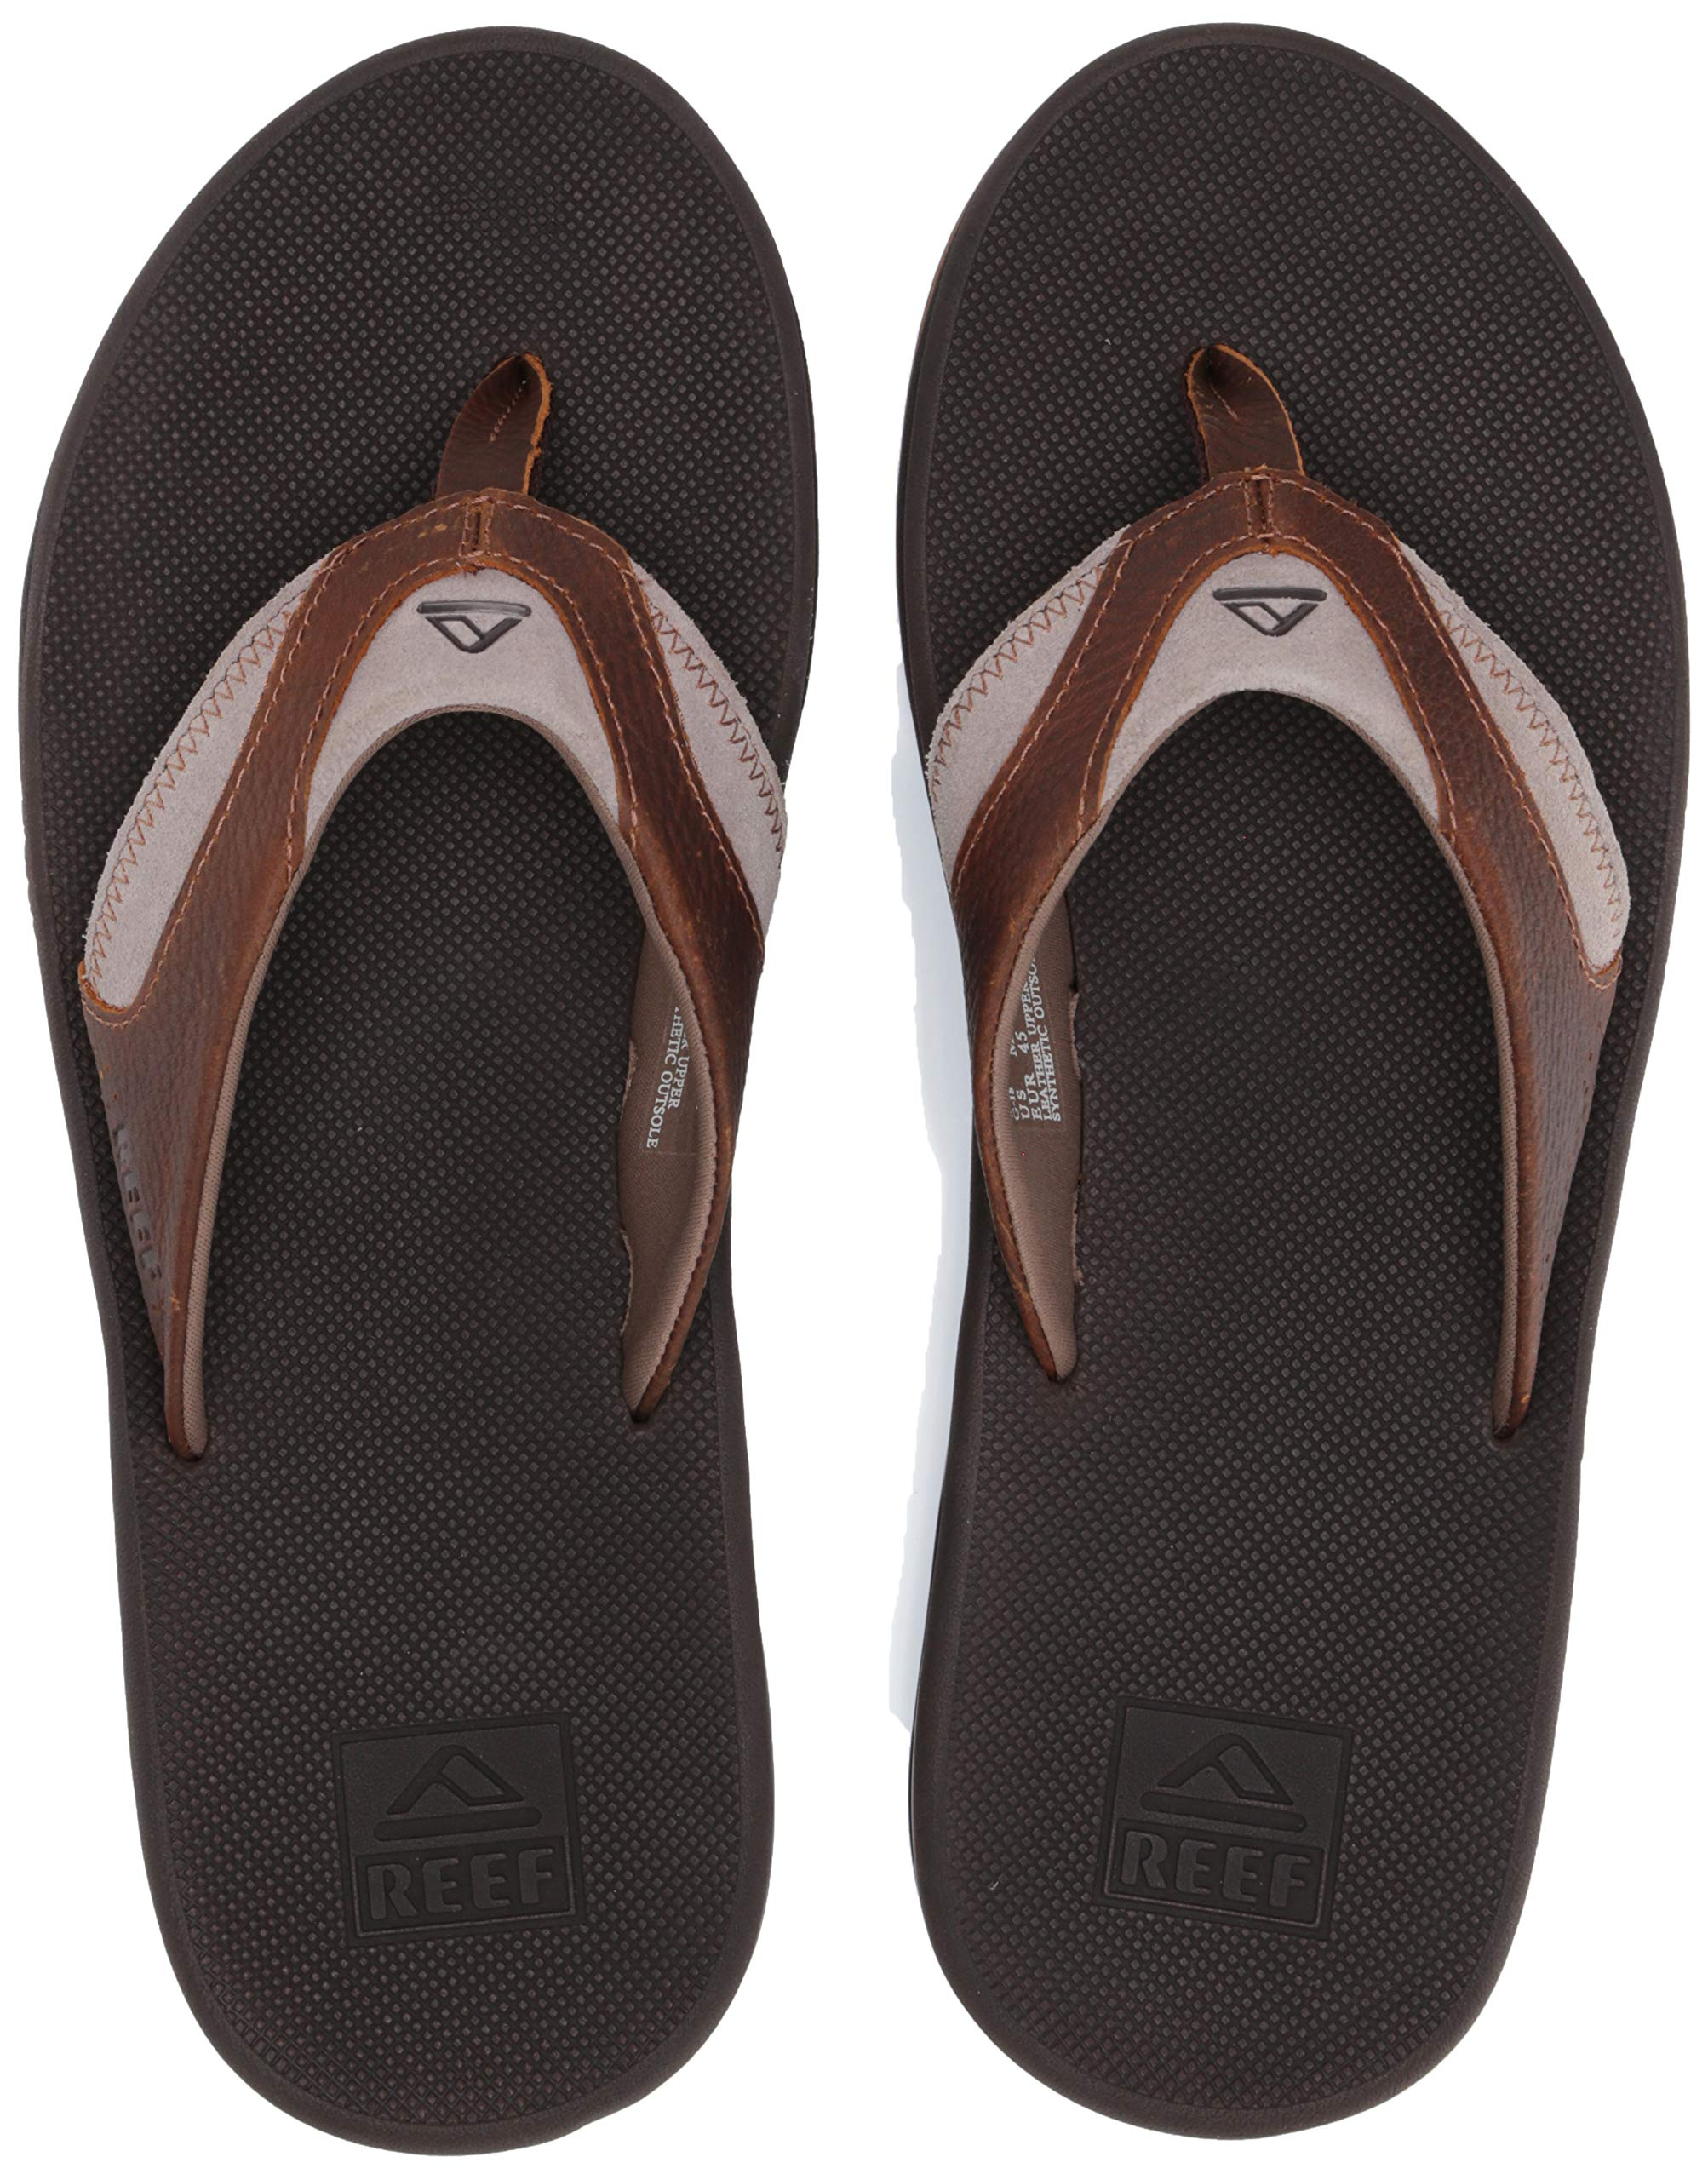 Reef Men's Leather Fanning Sandal Brown, 150 Medium US